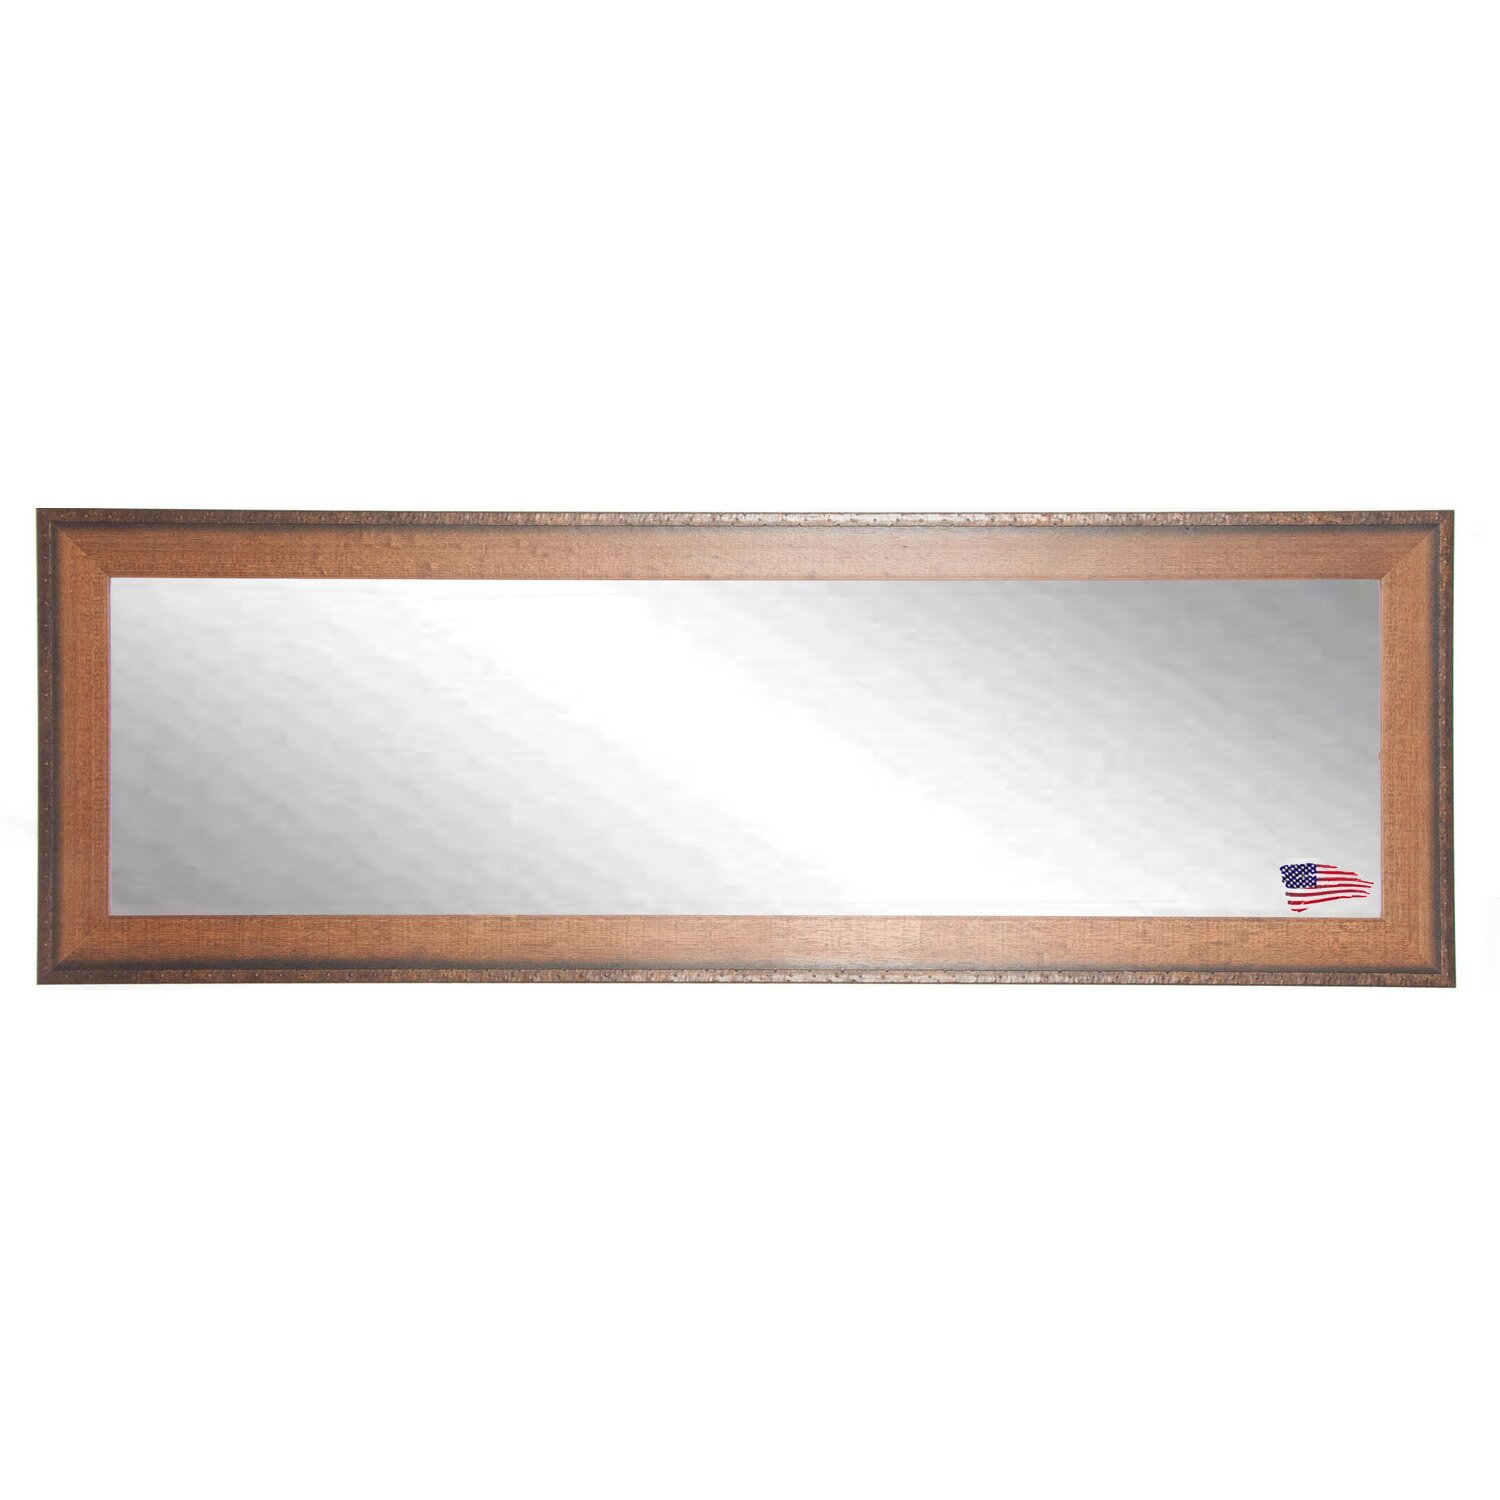 Timber estate double vanity wall mirror by rayne mirrors